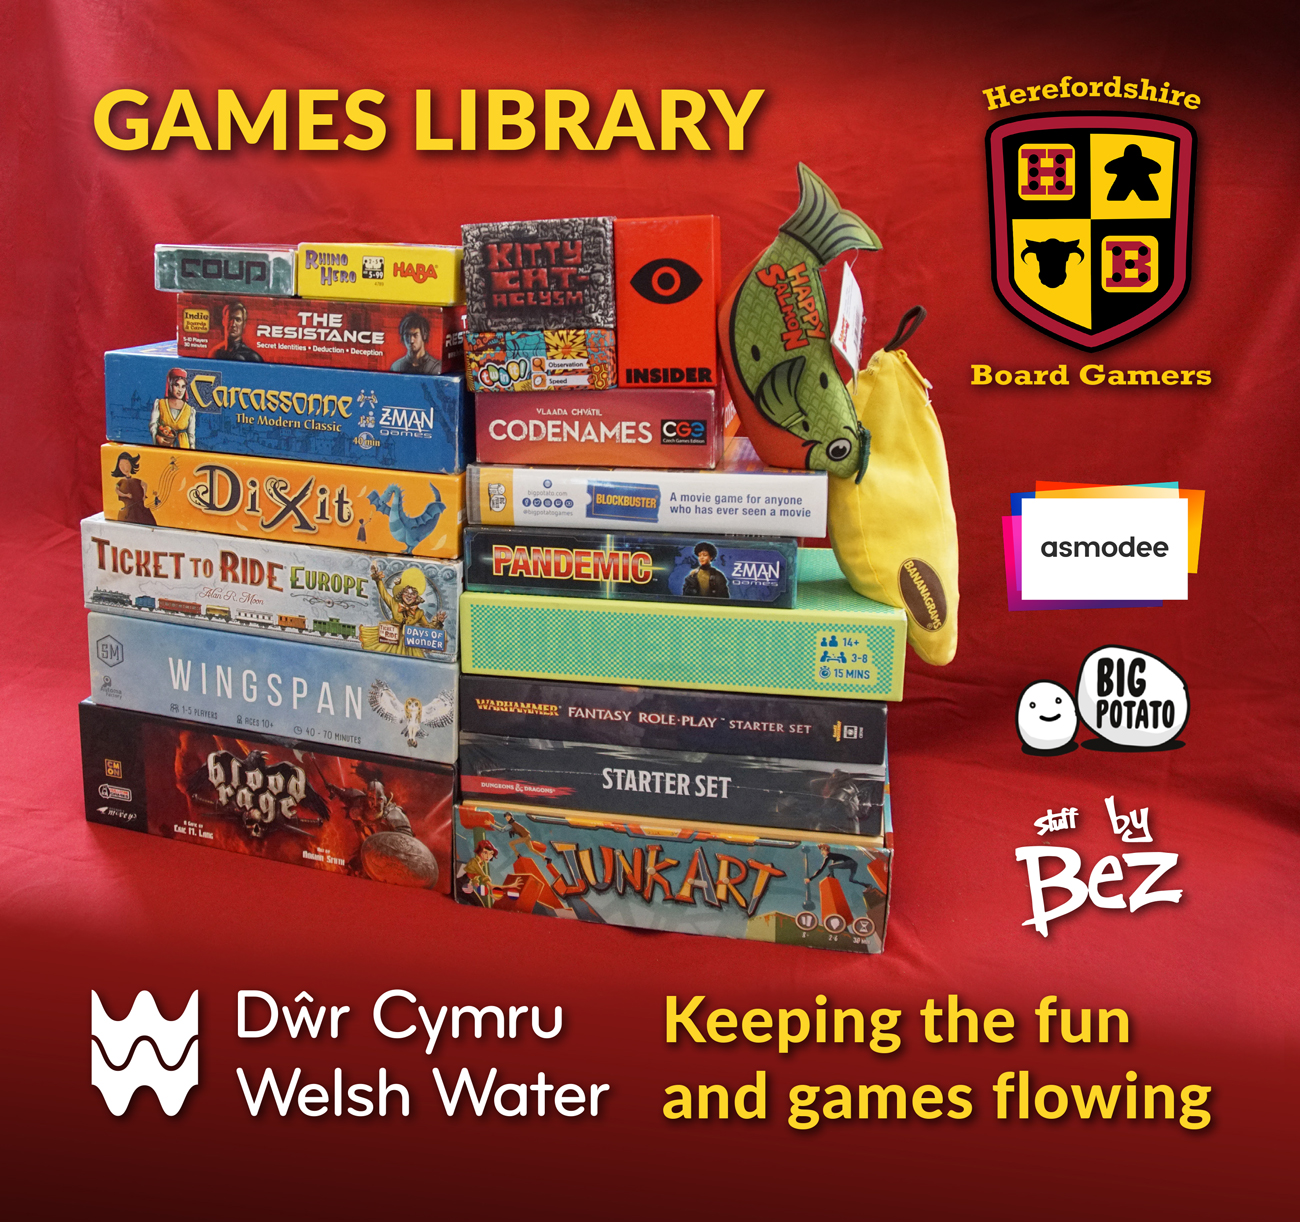 Board Game library now has 130 games, 13 Puzzles and 2 Role play games